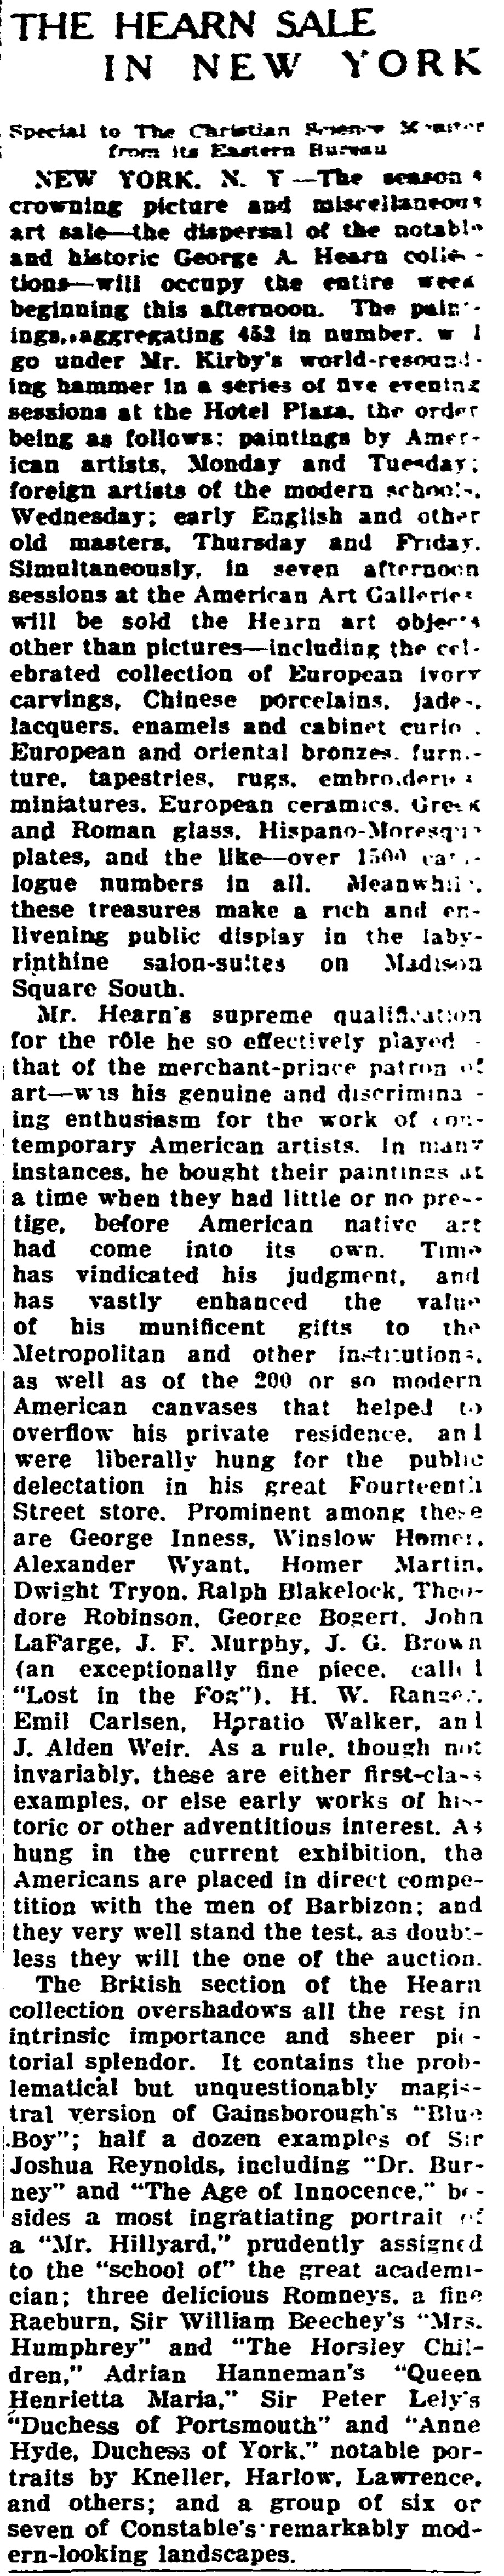 """The Christian Science Monitor, New York, NY, """"The Hearn Sale in New York"""", February 25, 1918, page 16, not illustrated"""